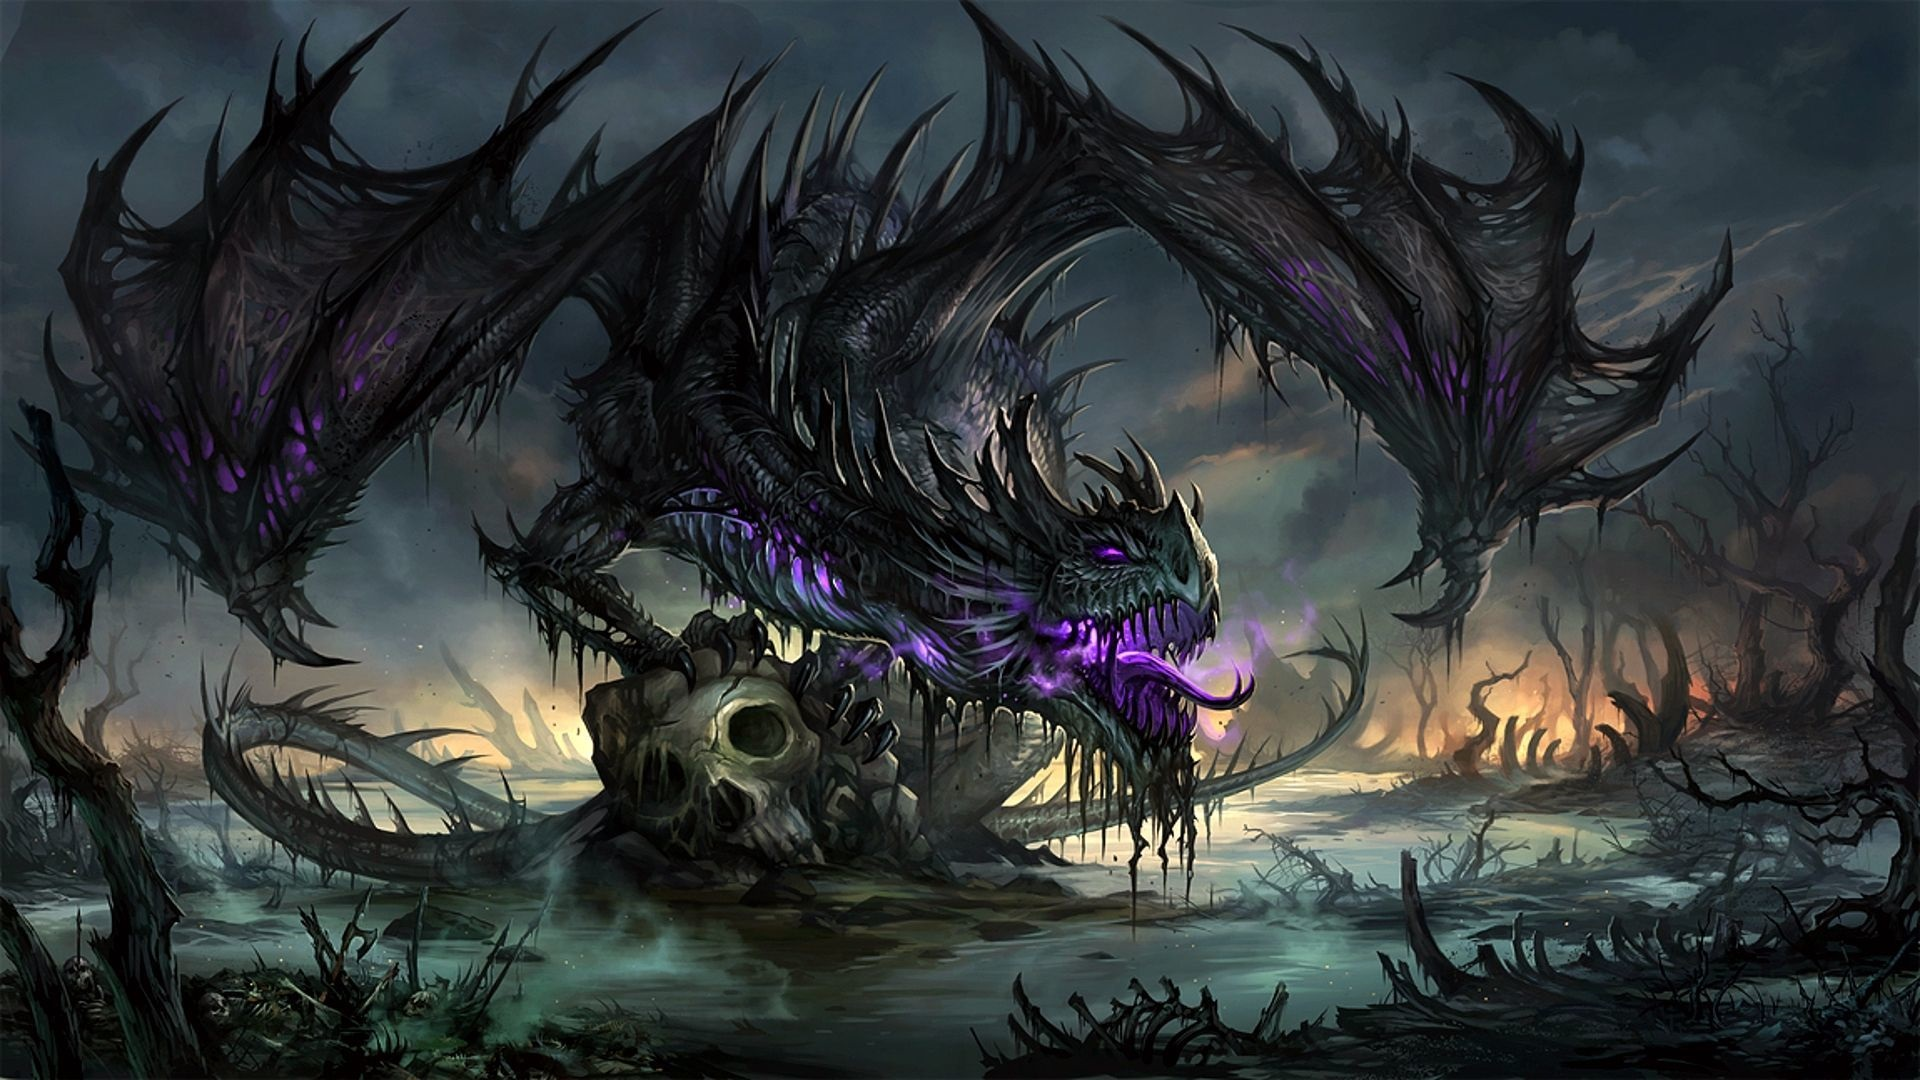 image - purple-dragon-fantasy-hd-wallpaper-1920x1080-44644